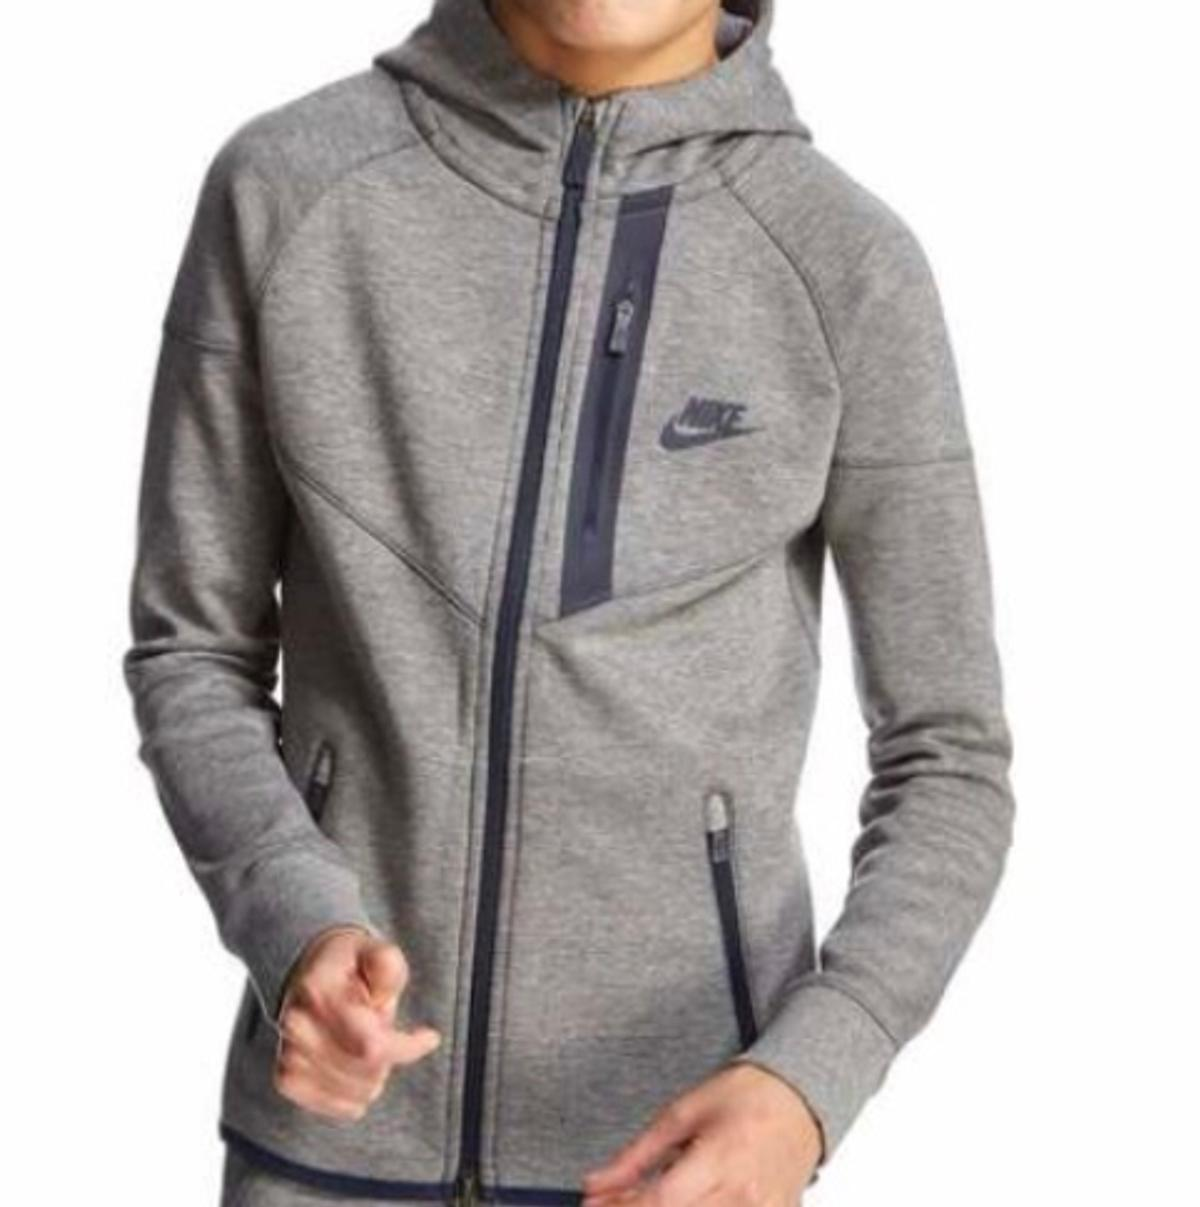 d5a26efa4610 NIKE TECH HOODIE 13YEARS JUNIOR in E6 London for £30.00 for sale ...